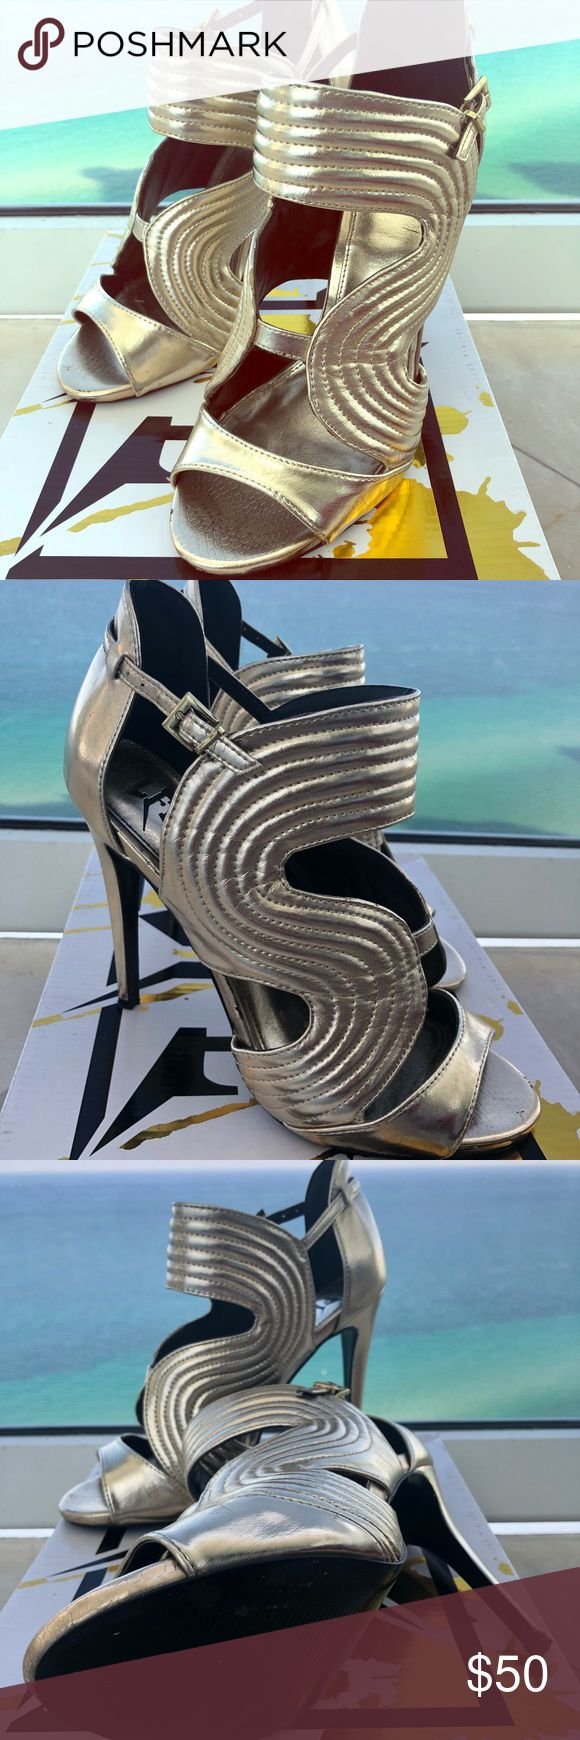 Golden Warrior Pumps Heels Size 8.5 Be a warrior woman  Unique gold wraparound Heels  Perfect for the new year!  Size 8.5   Worn twice only  In great condition  *Bought them at a Miami boutique Shoes Heels